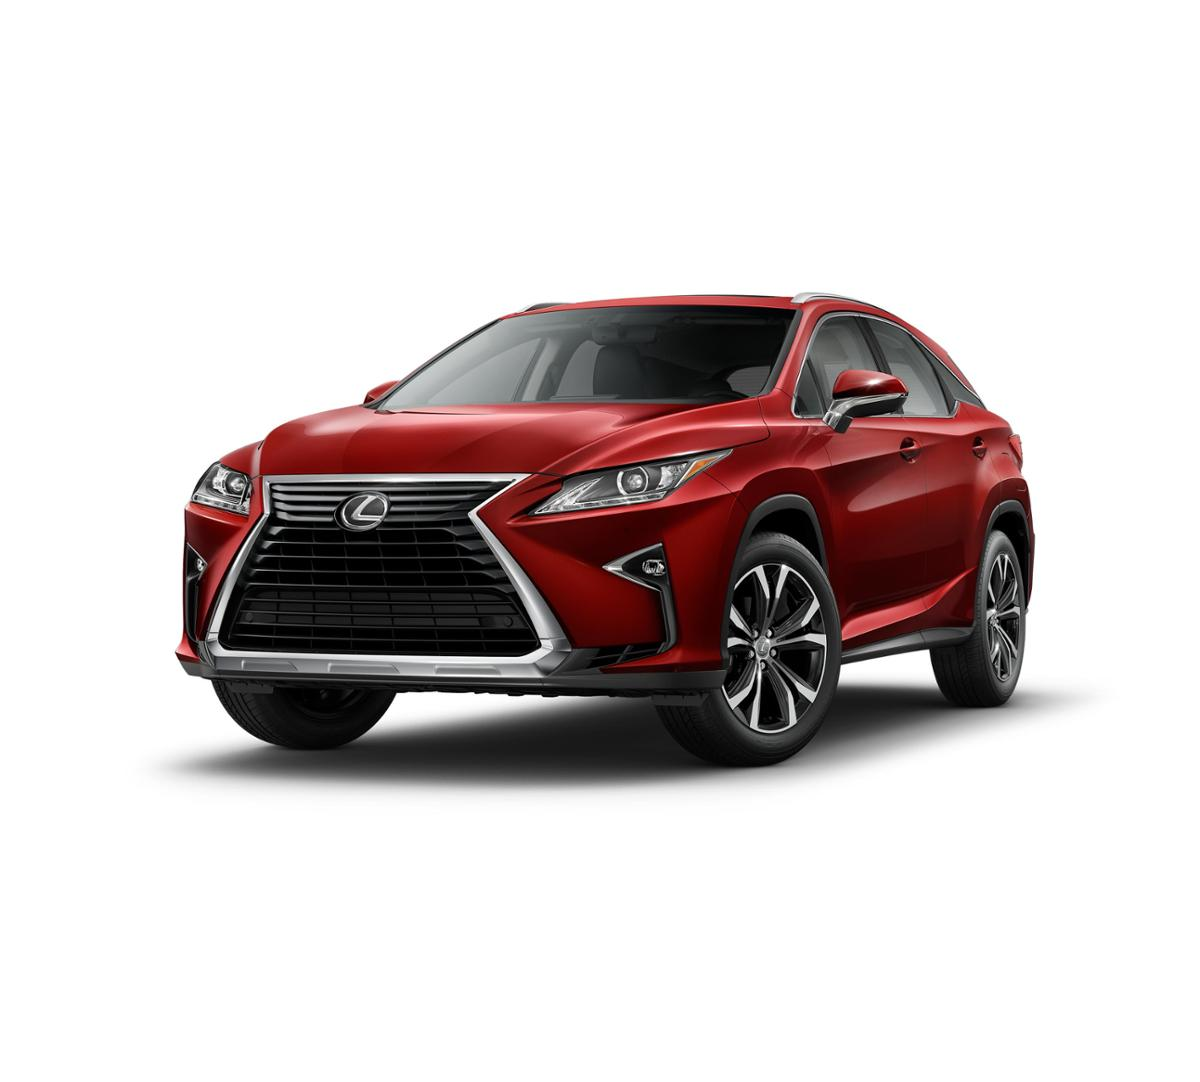 2017 Lexus RX 350 Vehicle Photo in El Monte, CA 91731